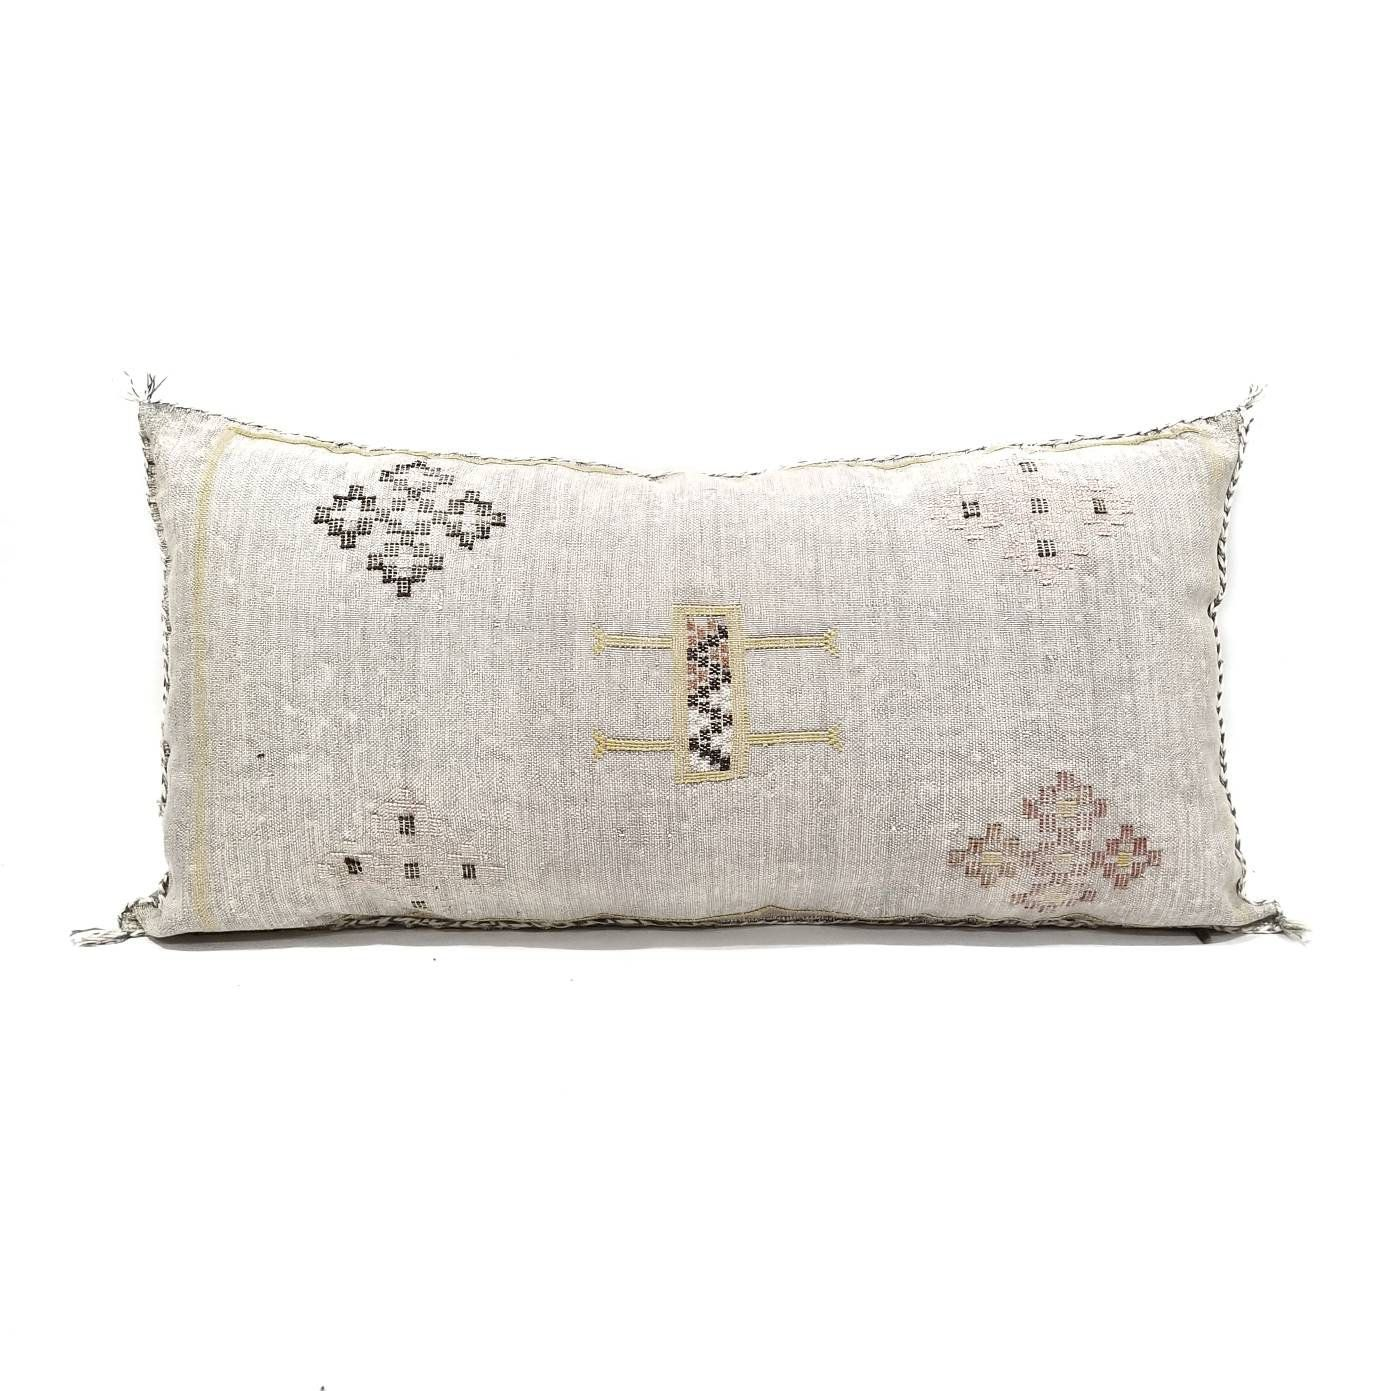 19x 35 Giant King Size Moroccan Cactus Silk Sabra Pillow Cover With Zipper Closure Ed